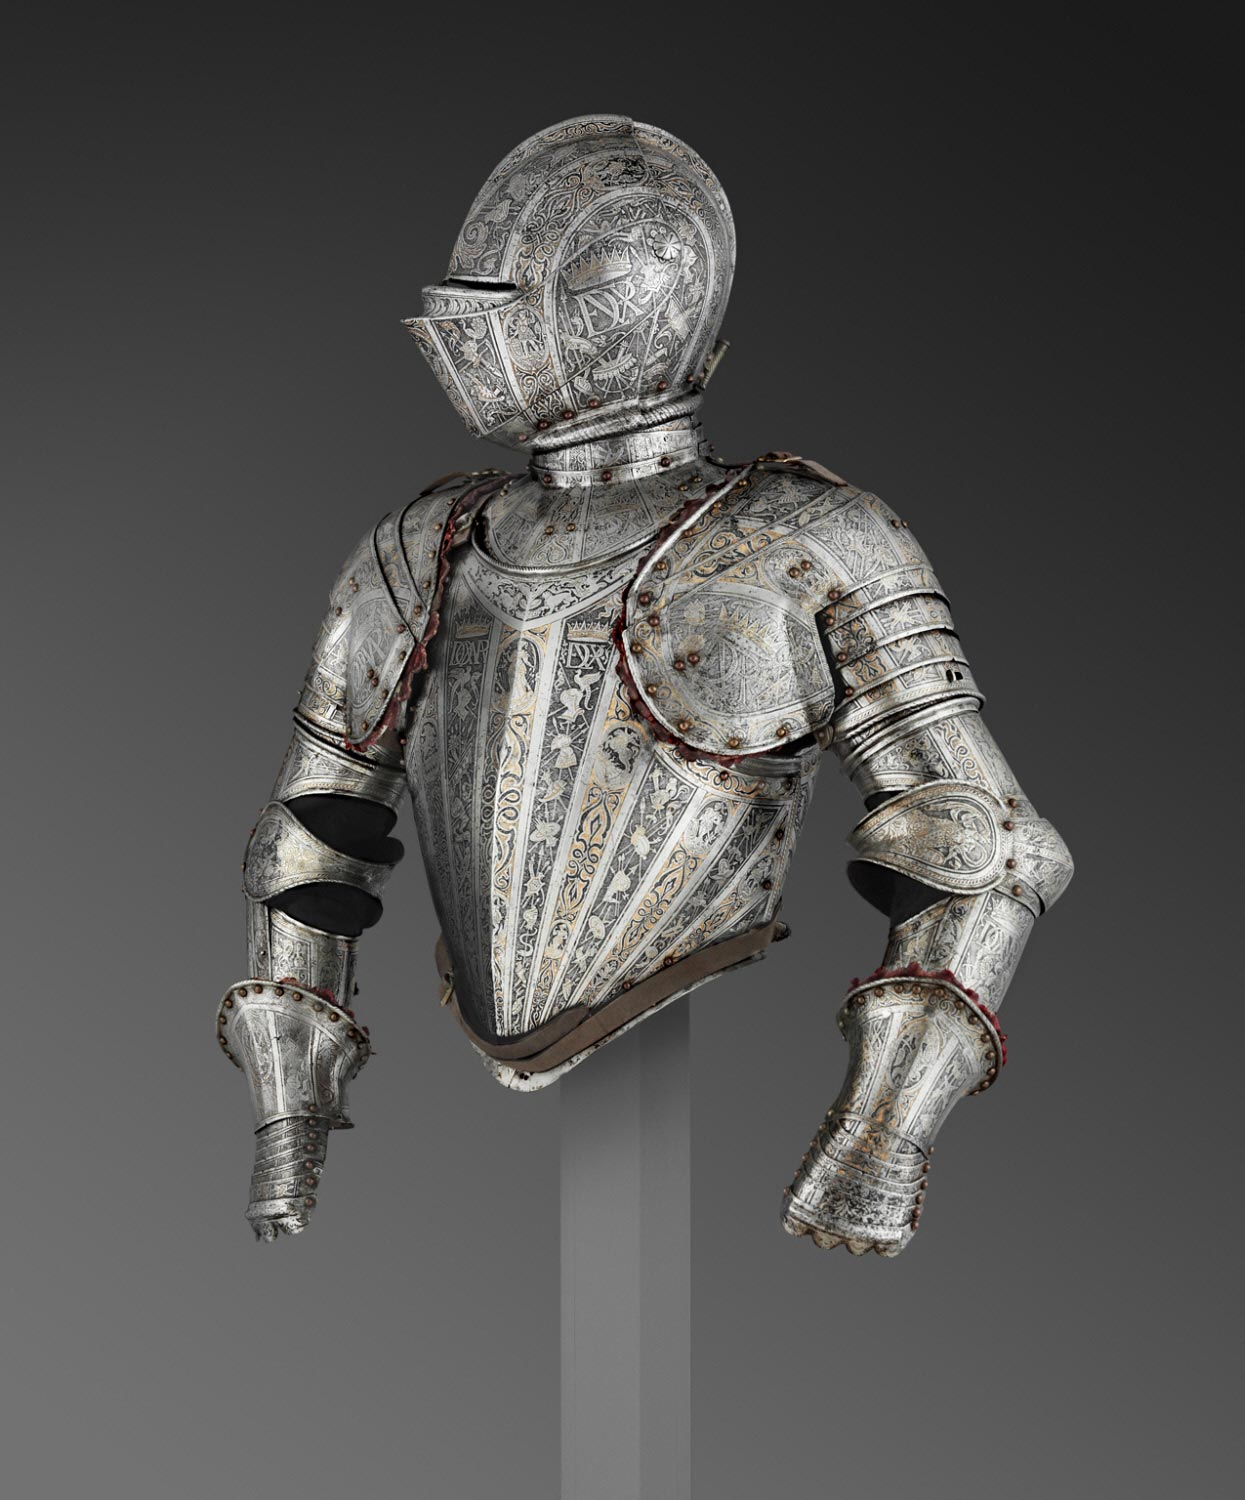 Armor for Use in the Tourney Fought on Foot over the Barriers